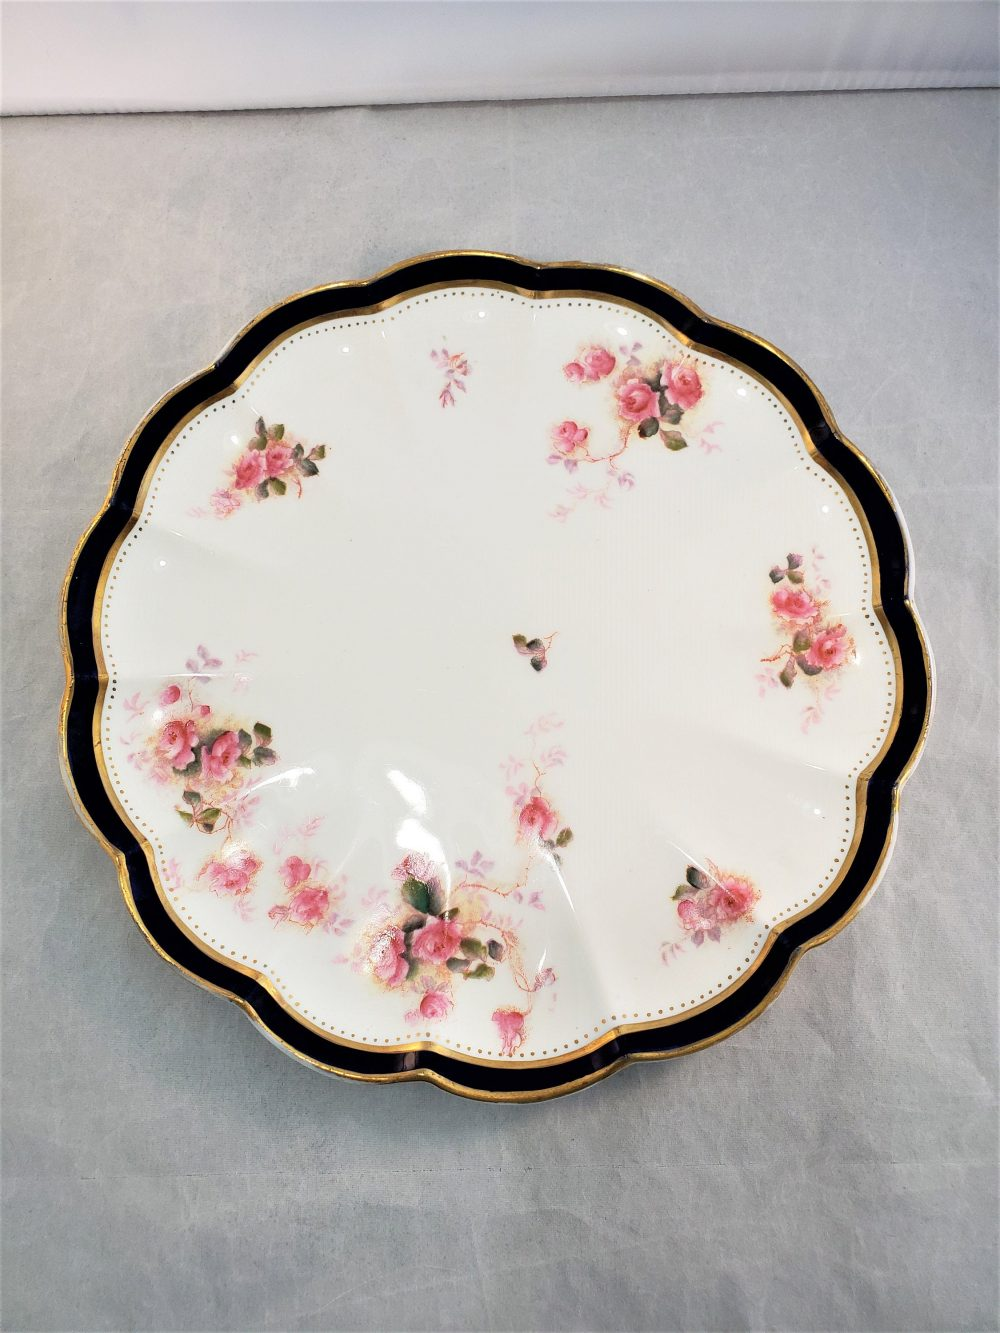 1891-1920 George Jones & Son Crescent China Plate Pink Flowers White Serving Blue/Gold Band Free Shipping @everything Vintage